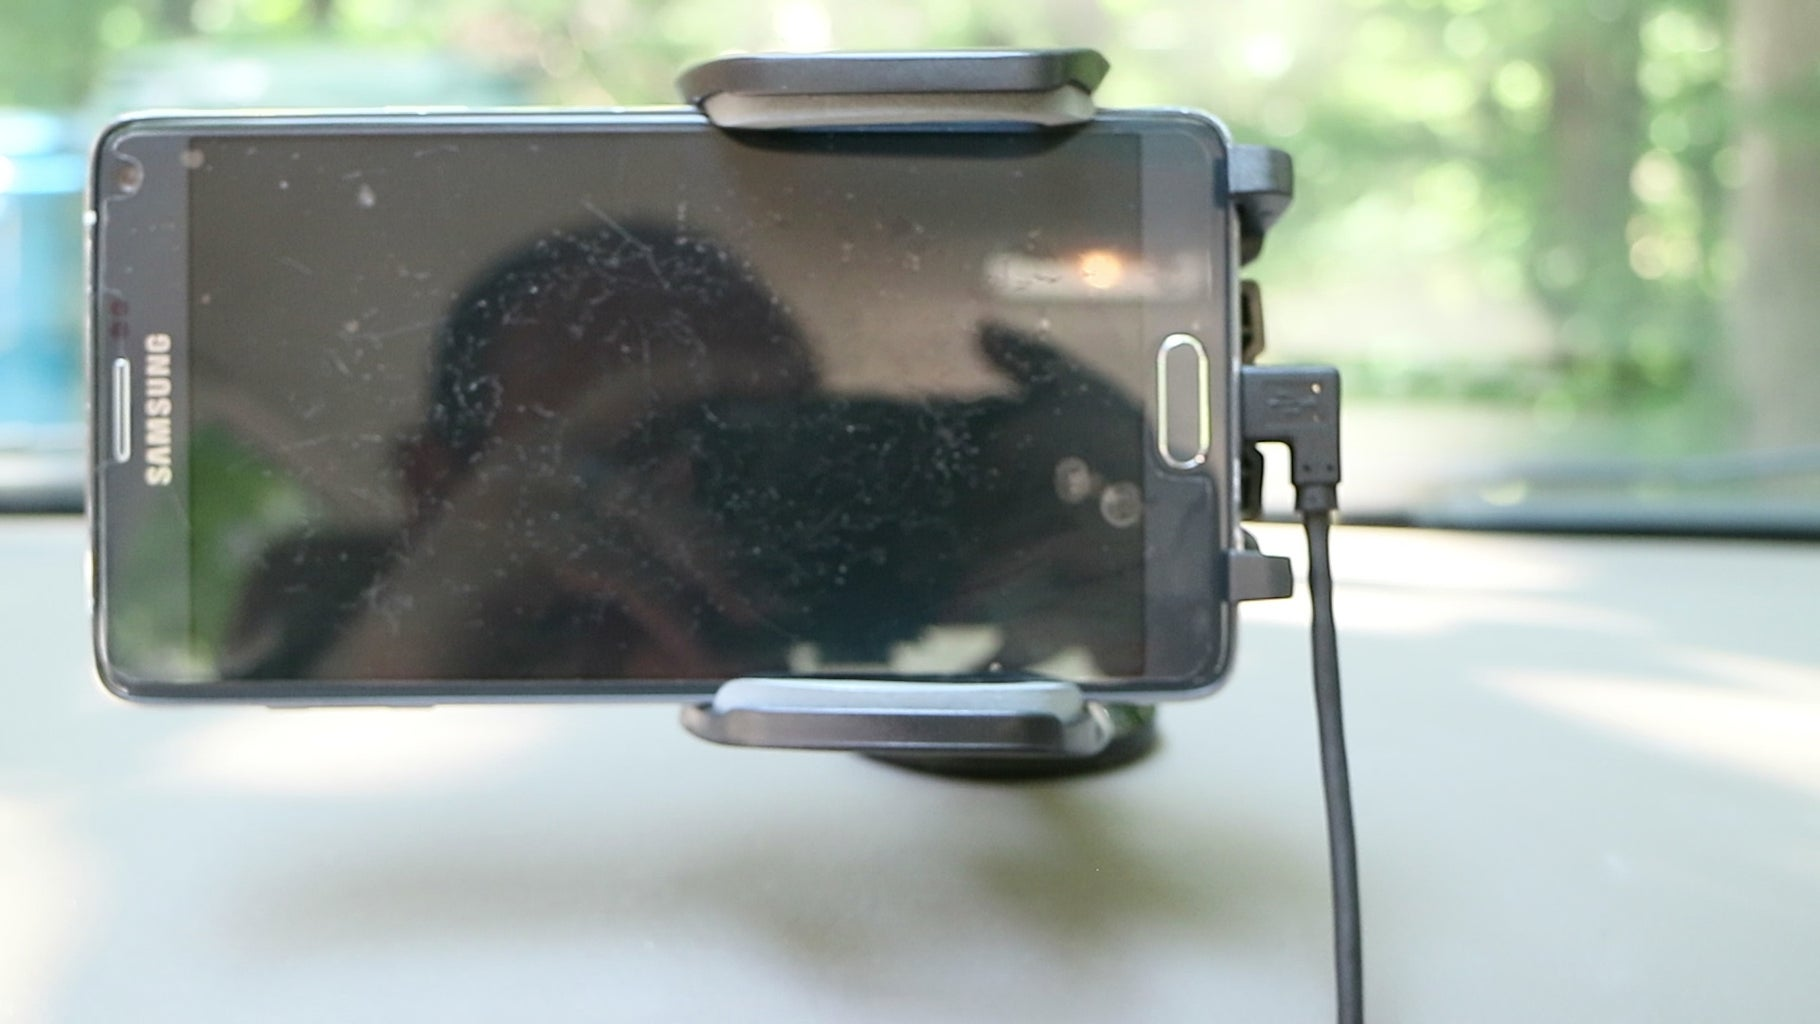 Attaching the Camera to the Car